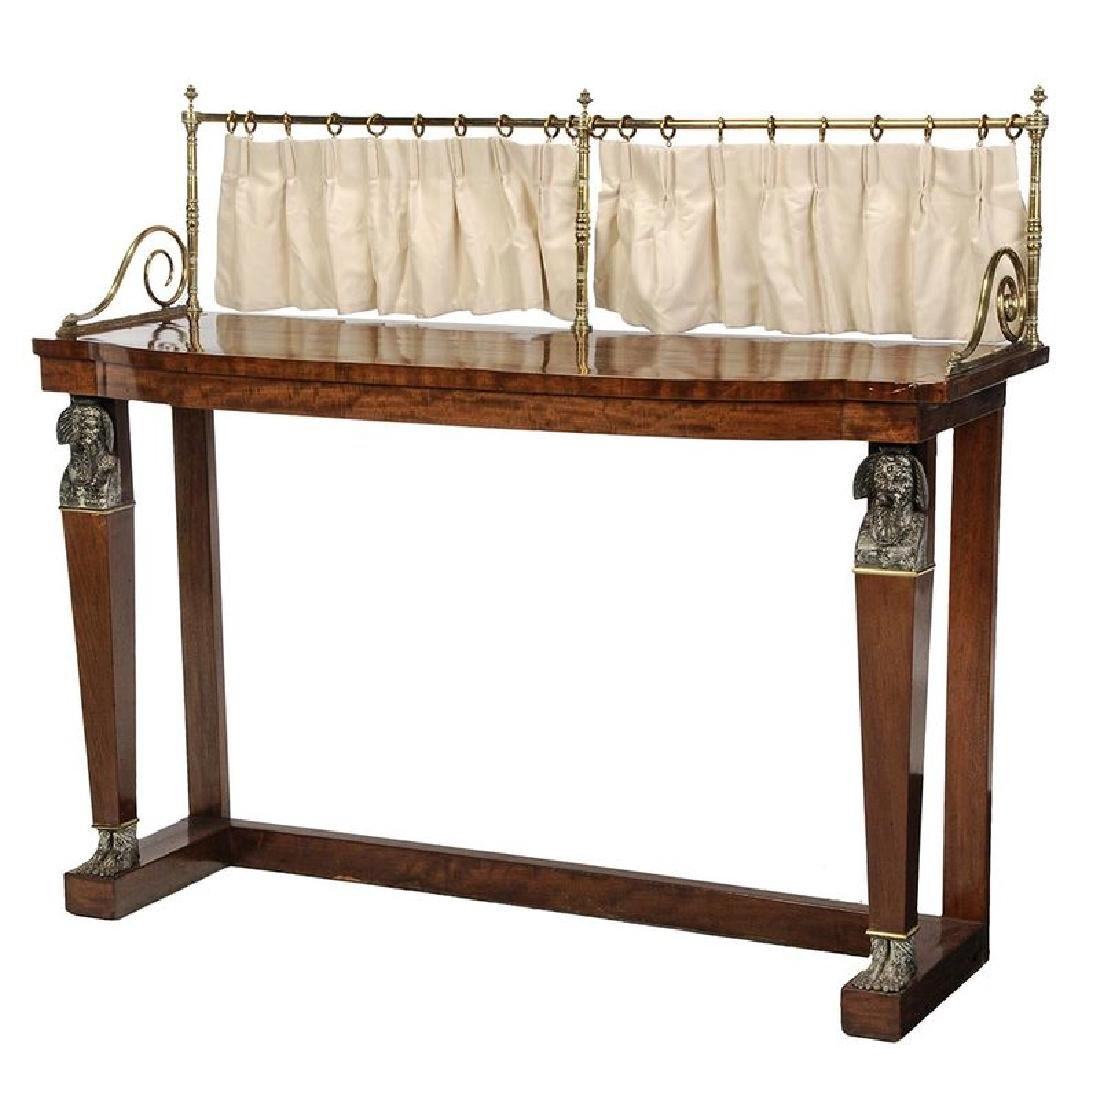 Empire Mahogany and Brass Mounted Pier Table